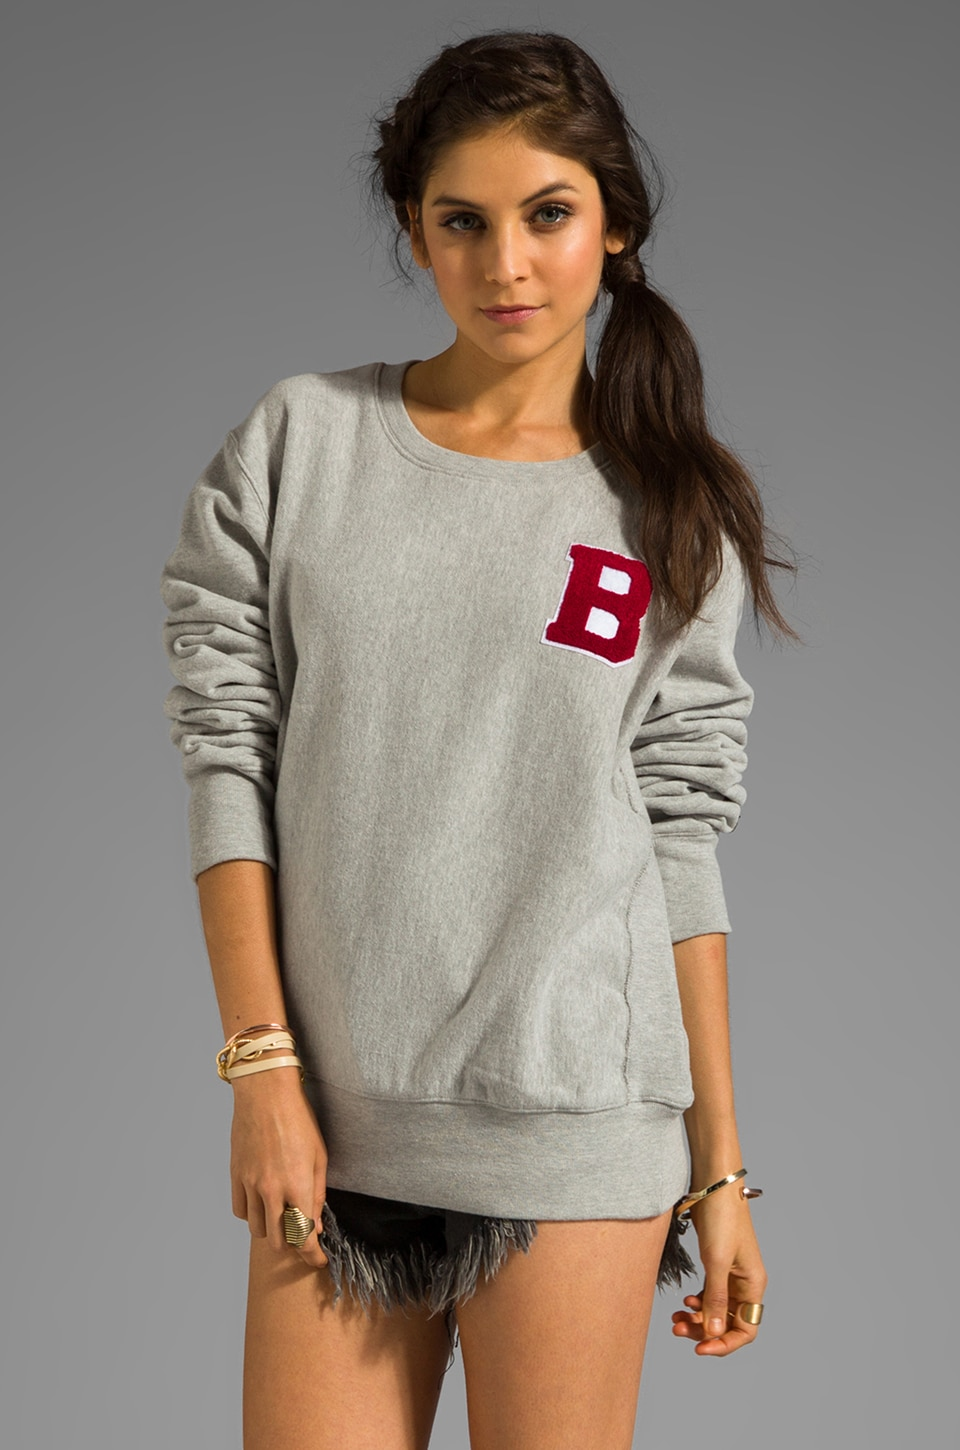 B-side by Wale 95 Sweatshirt in Heather Grey/Red